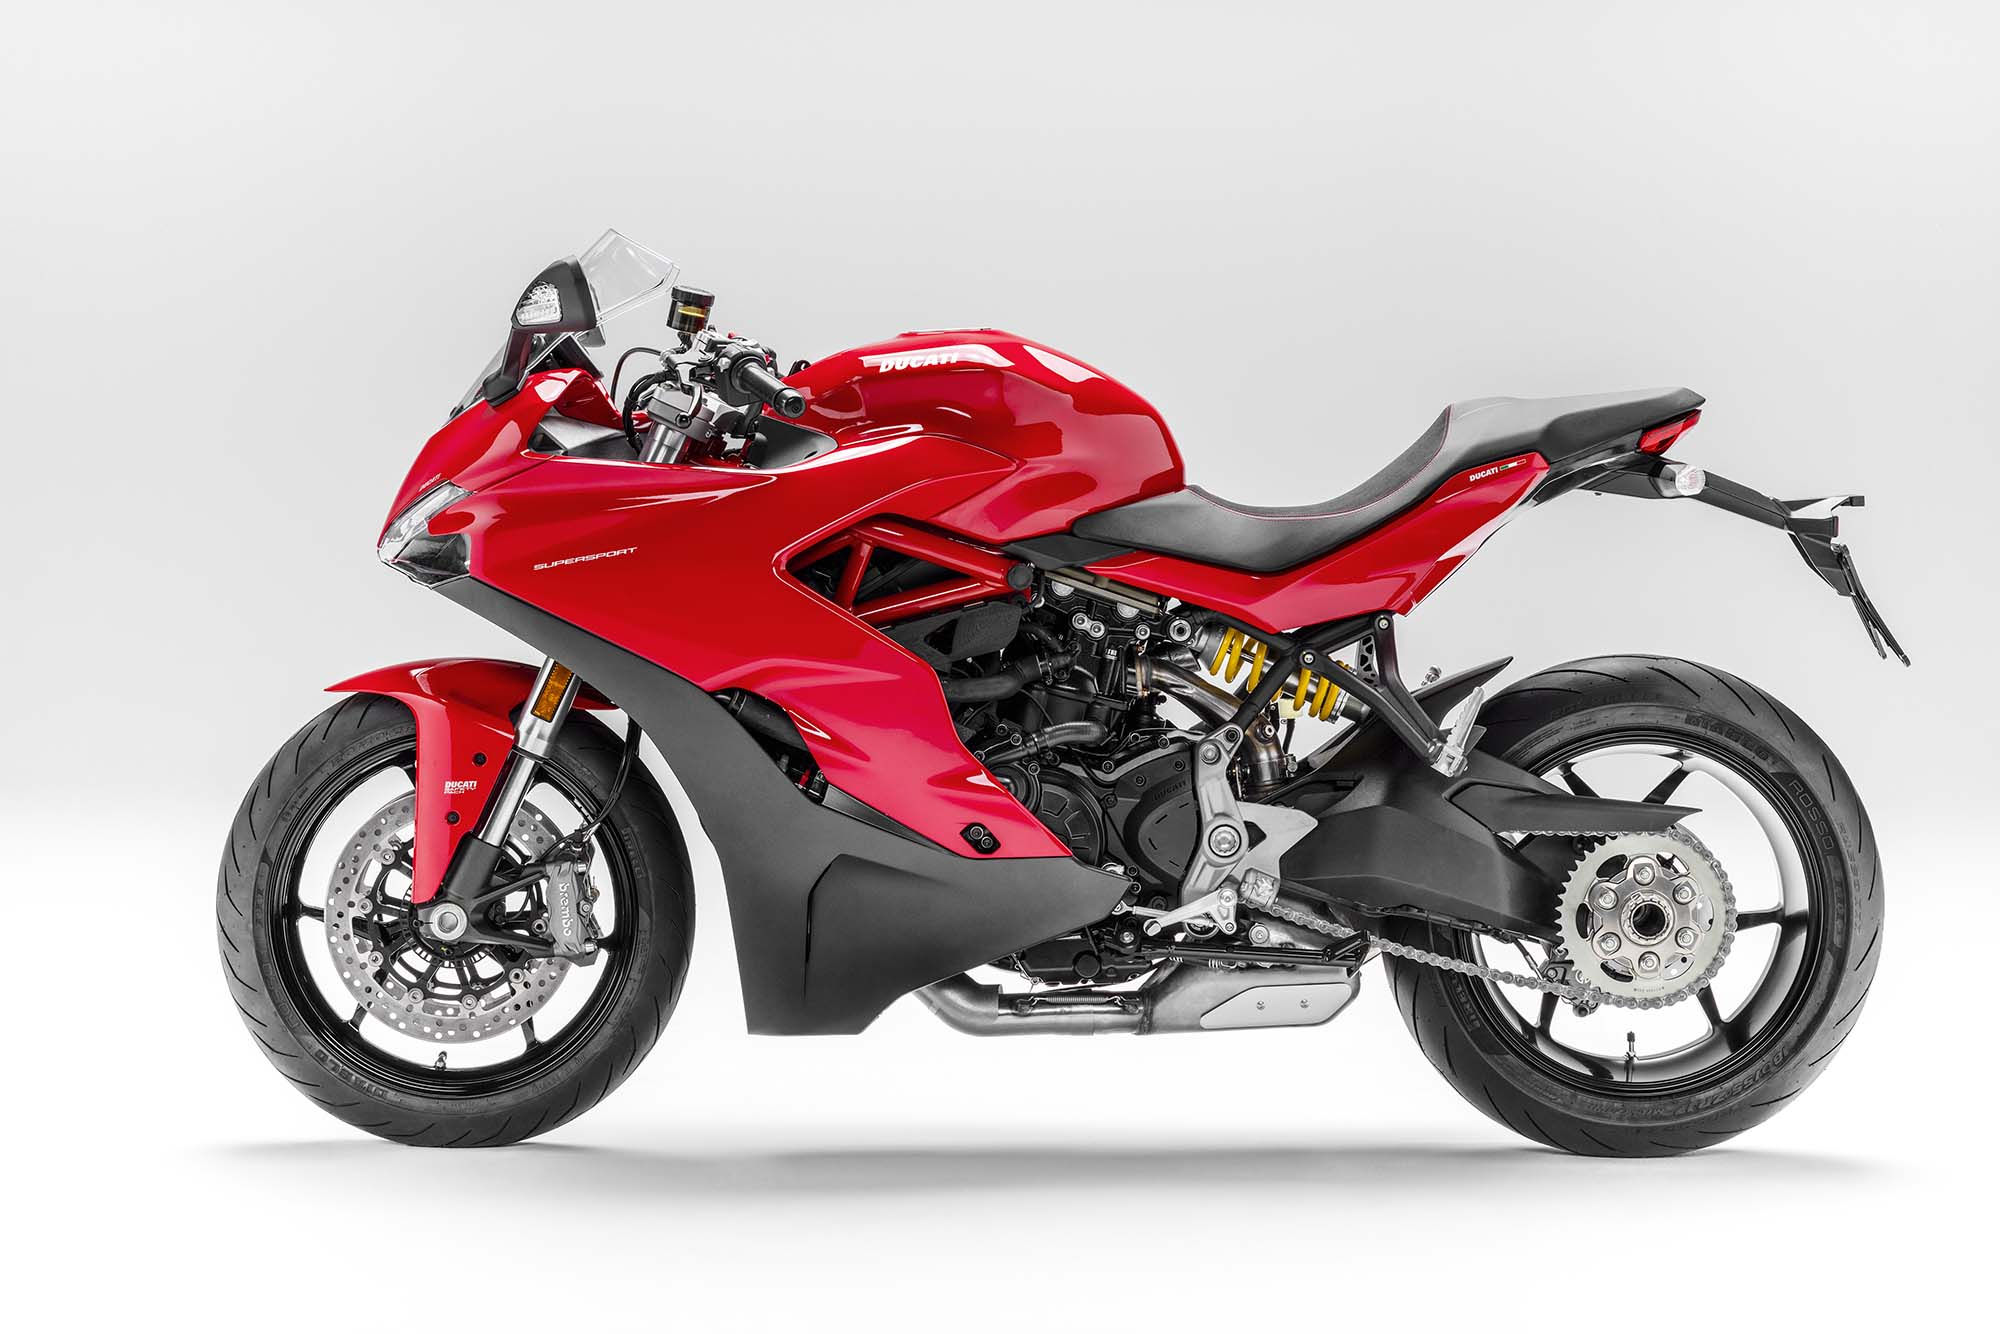 2017 Ducati Supersport 02